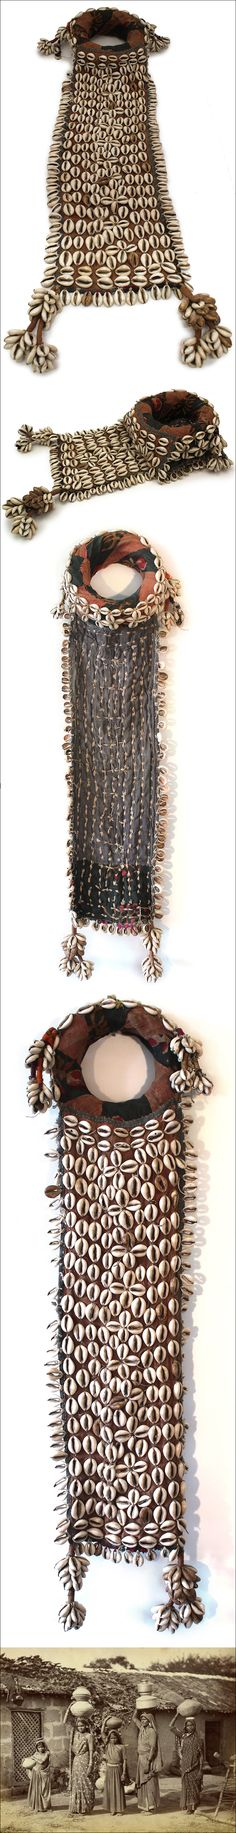 Headdress, Banjara, Gujarat, India.  This is a beautiful example of Banjara headgear with a pot-ring for stabilizing the water jar and an very long panel with hundreds of cowrie shells that hangs down to protects a Banjara woman's back from splashing water. Cowries are very auspicious as they represent Lakshmi, the goddess of prosperity.